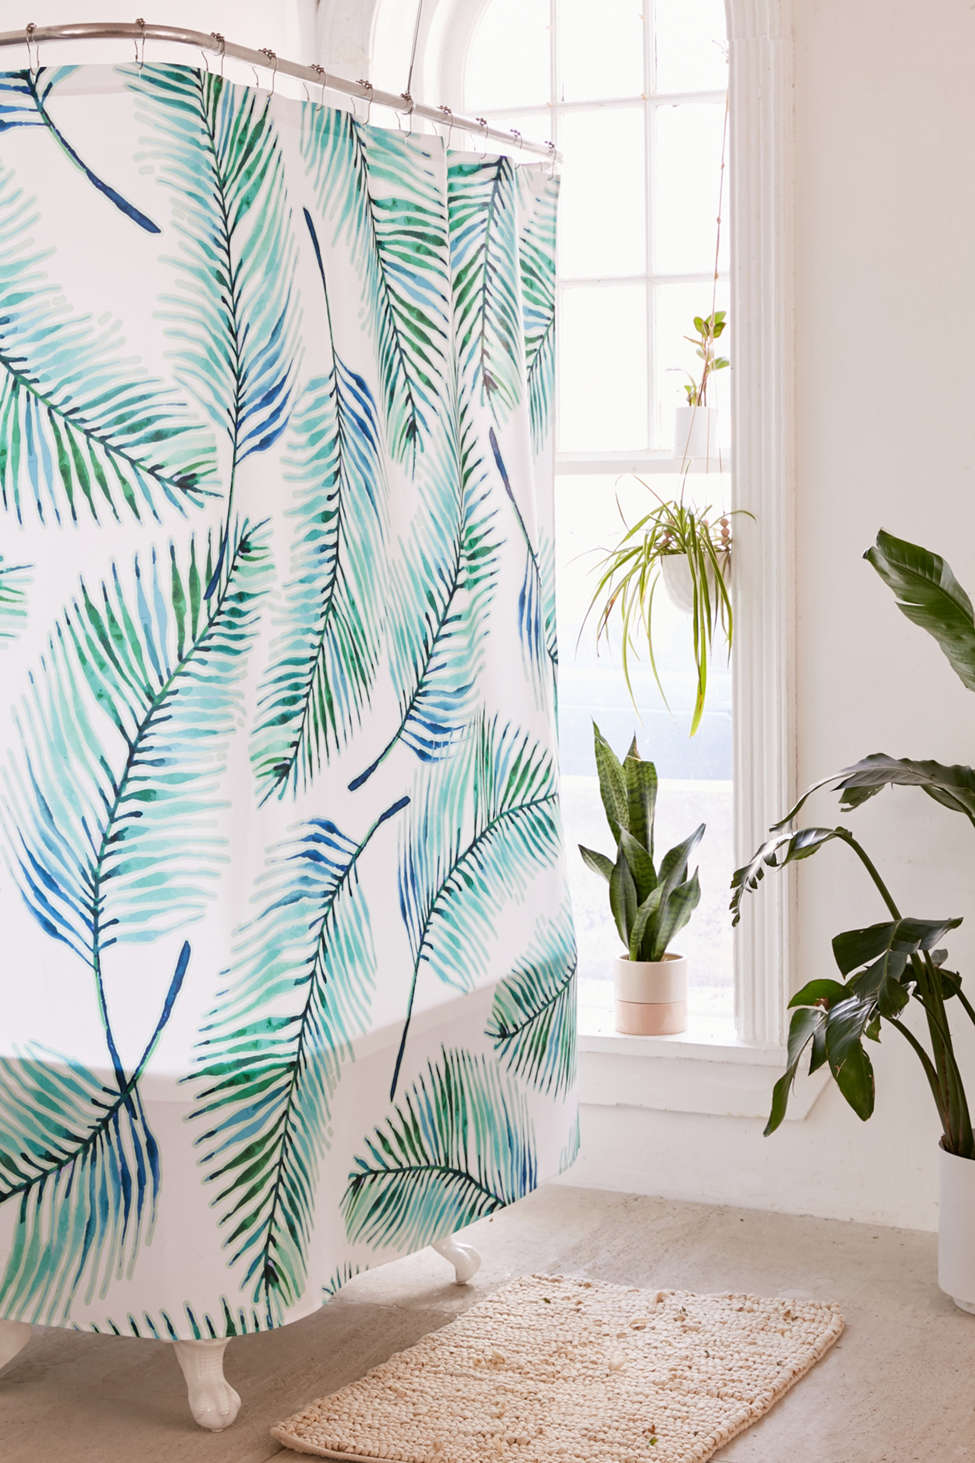 Lovely 83 Oranges For Deny Watercolor Palms Shower Curtain | Urban Outfitters ZW66